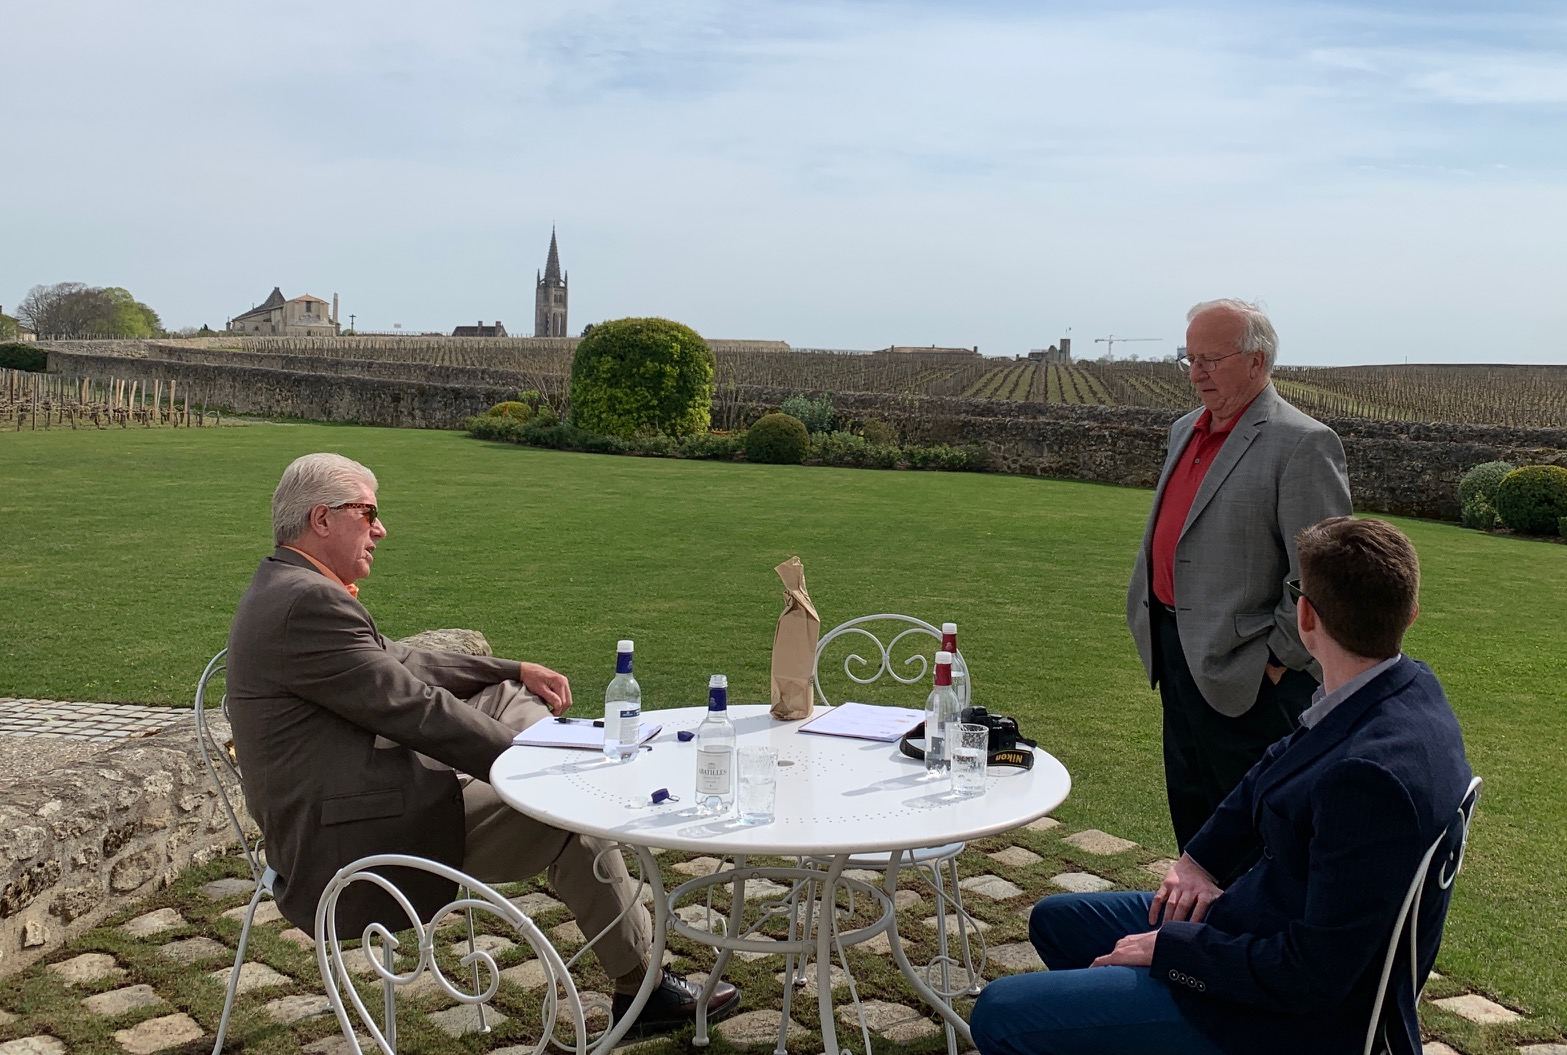 The team discusses the vintage with the treasured Saint-Emilion terroir in the background